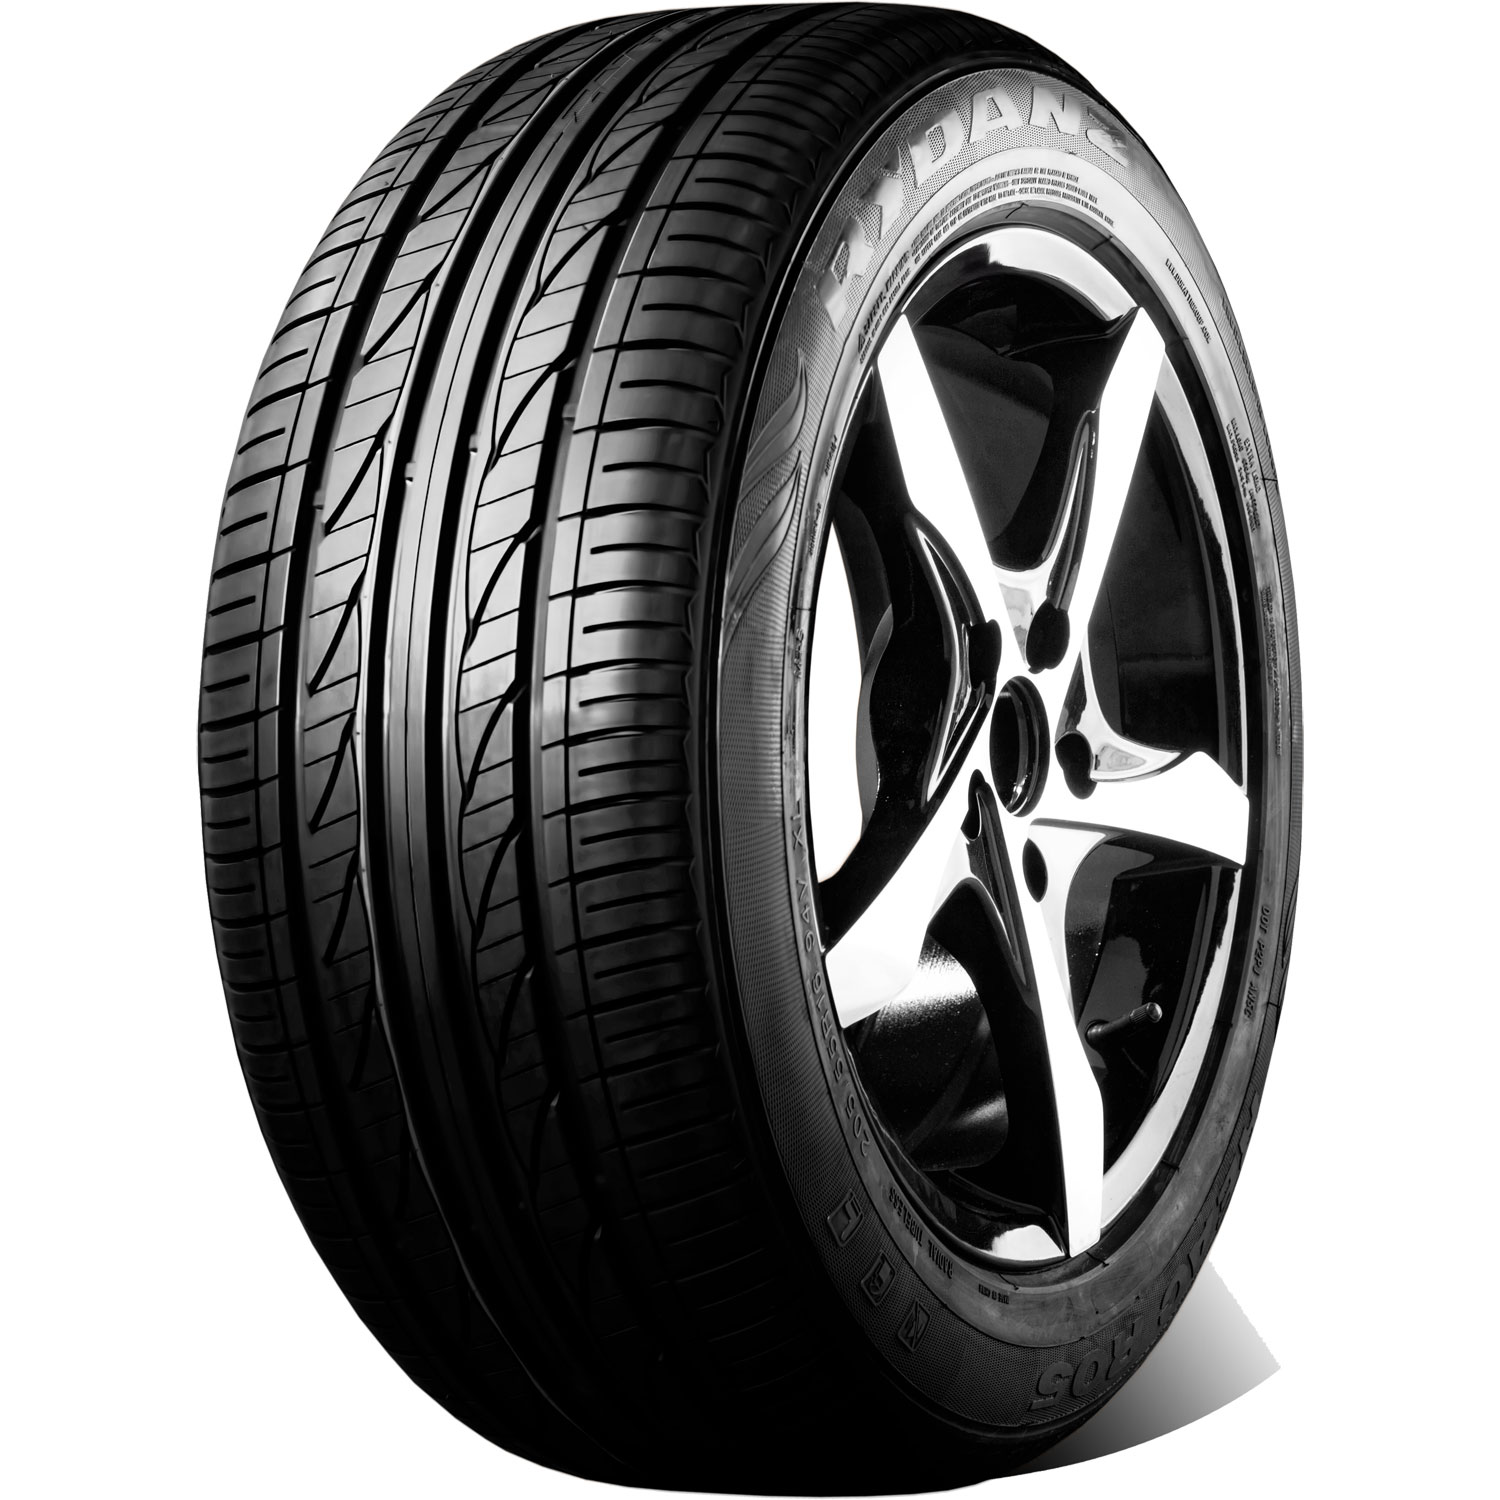 Rydanz Tires Reac R05 Passenger All Season Tire - 195/60R16 91V